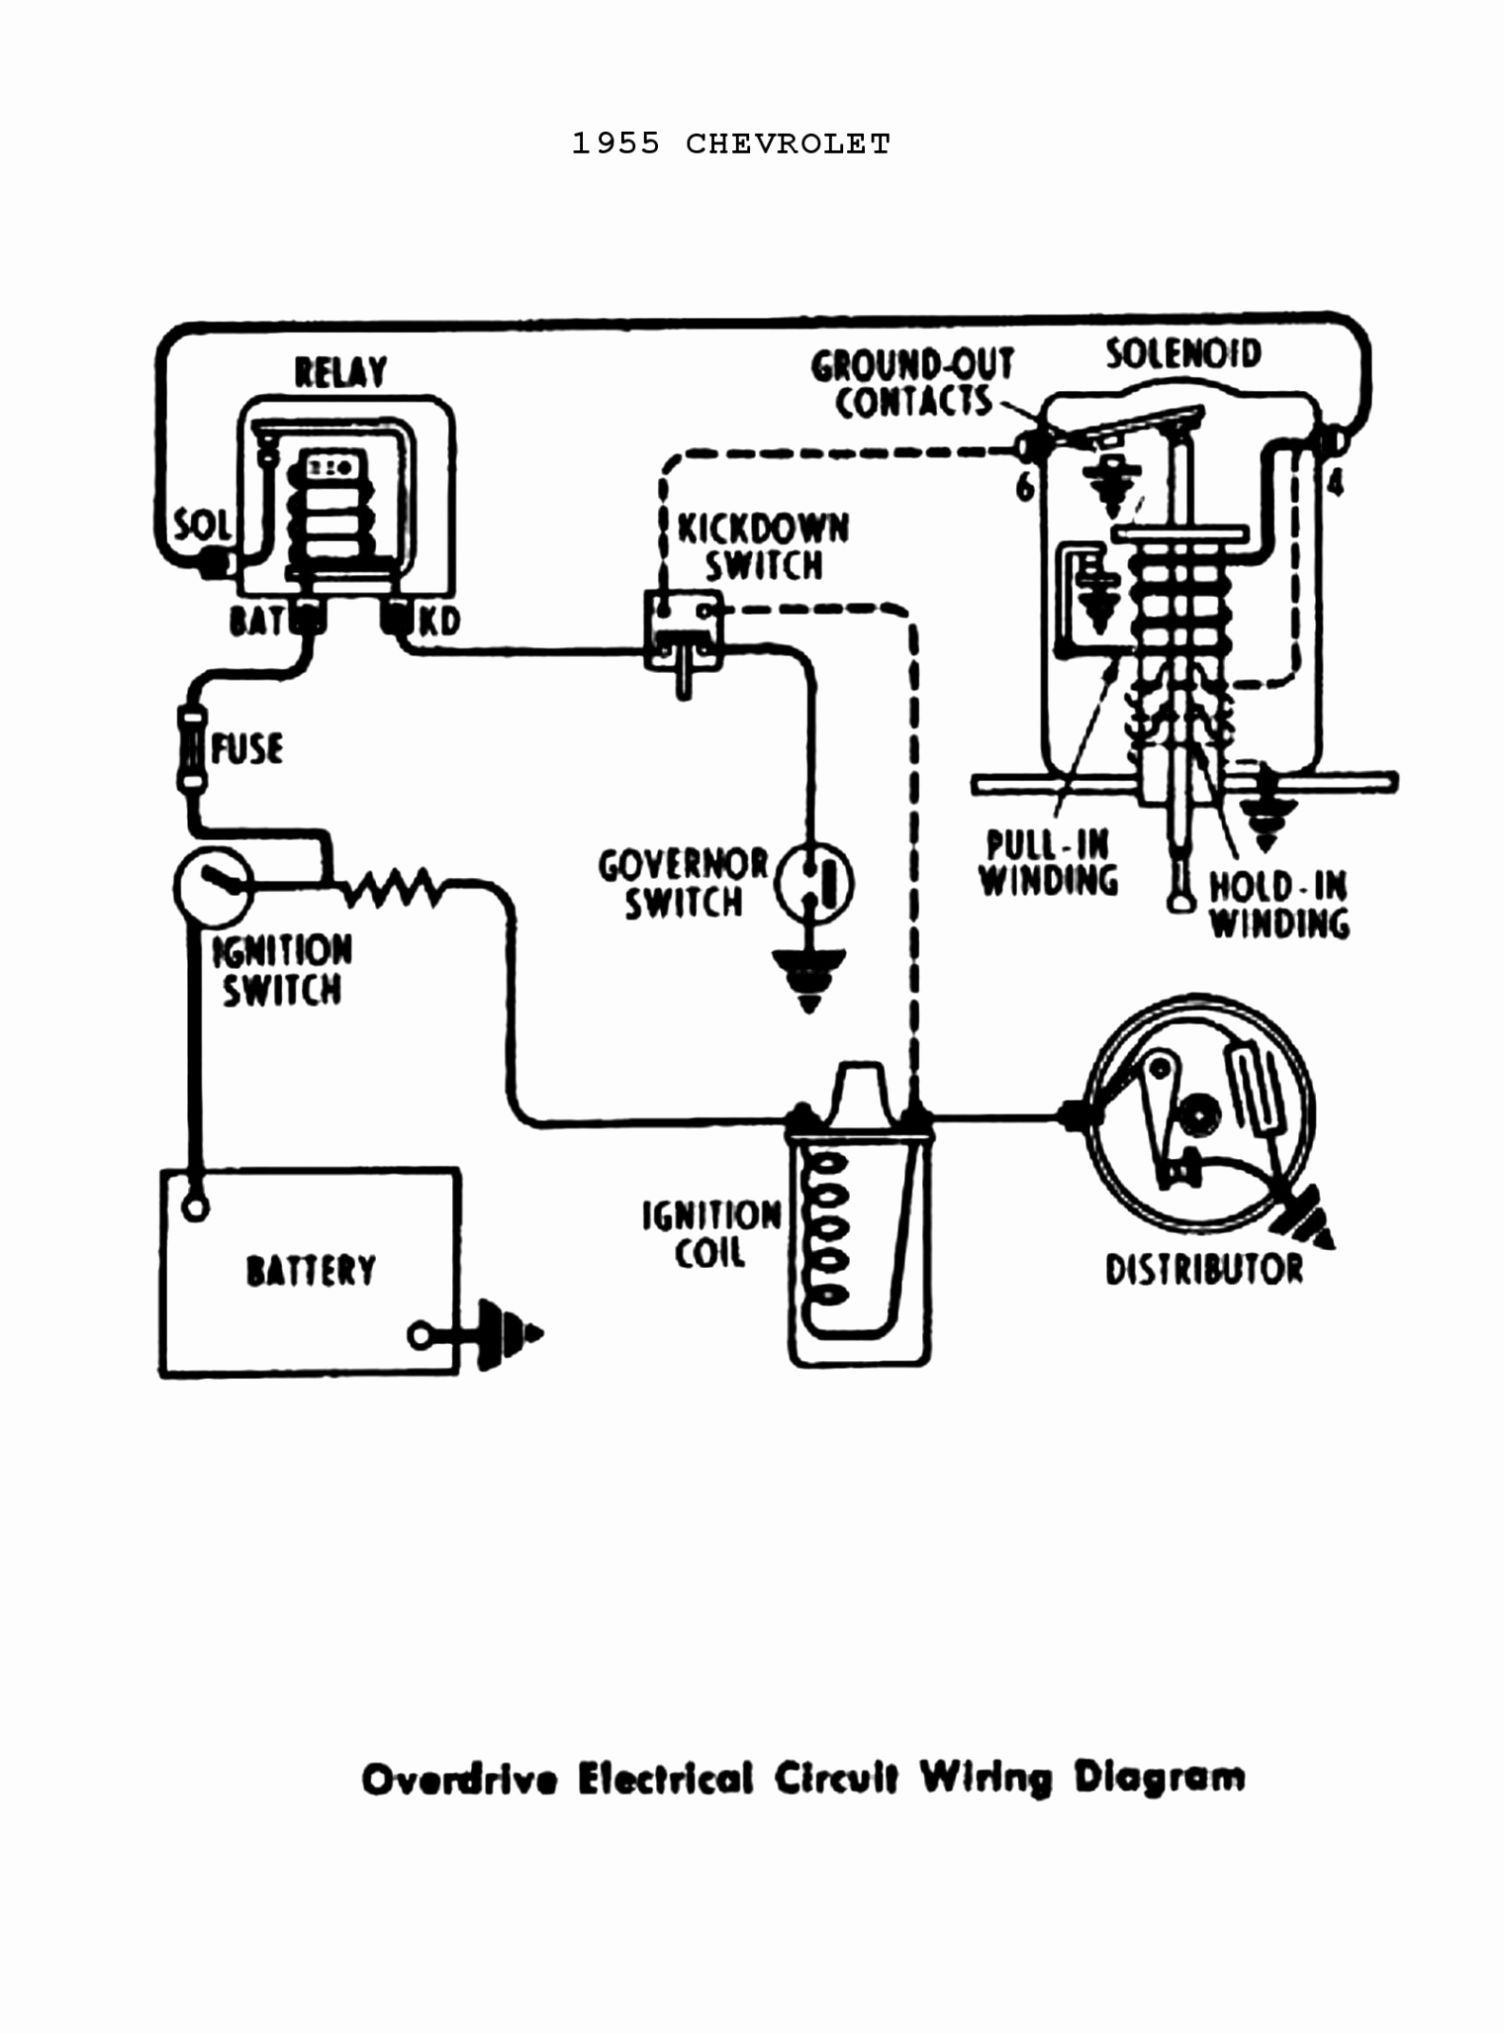 unique motorola alternator wiring diagram john deere diagrams digramssample diagramimages wiringdiagramsample wiringdiagram [ 1504 x 2034 Pixel ]